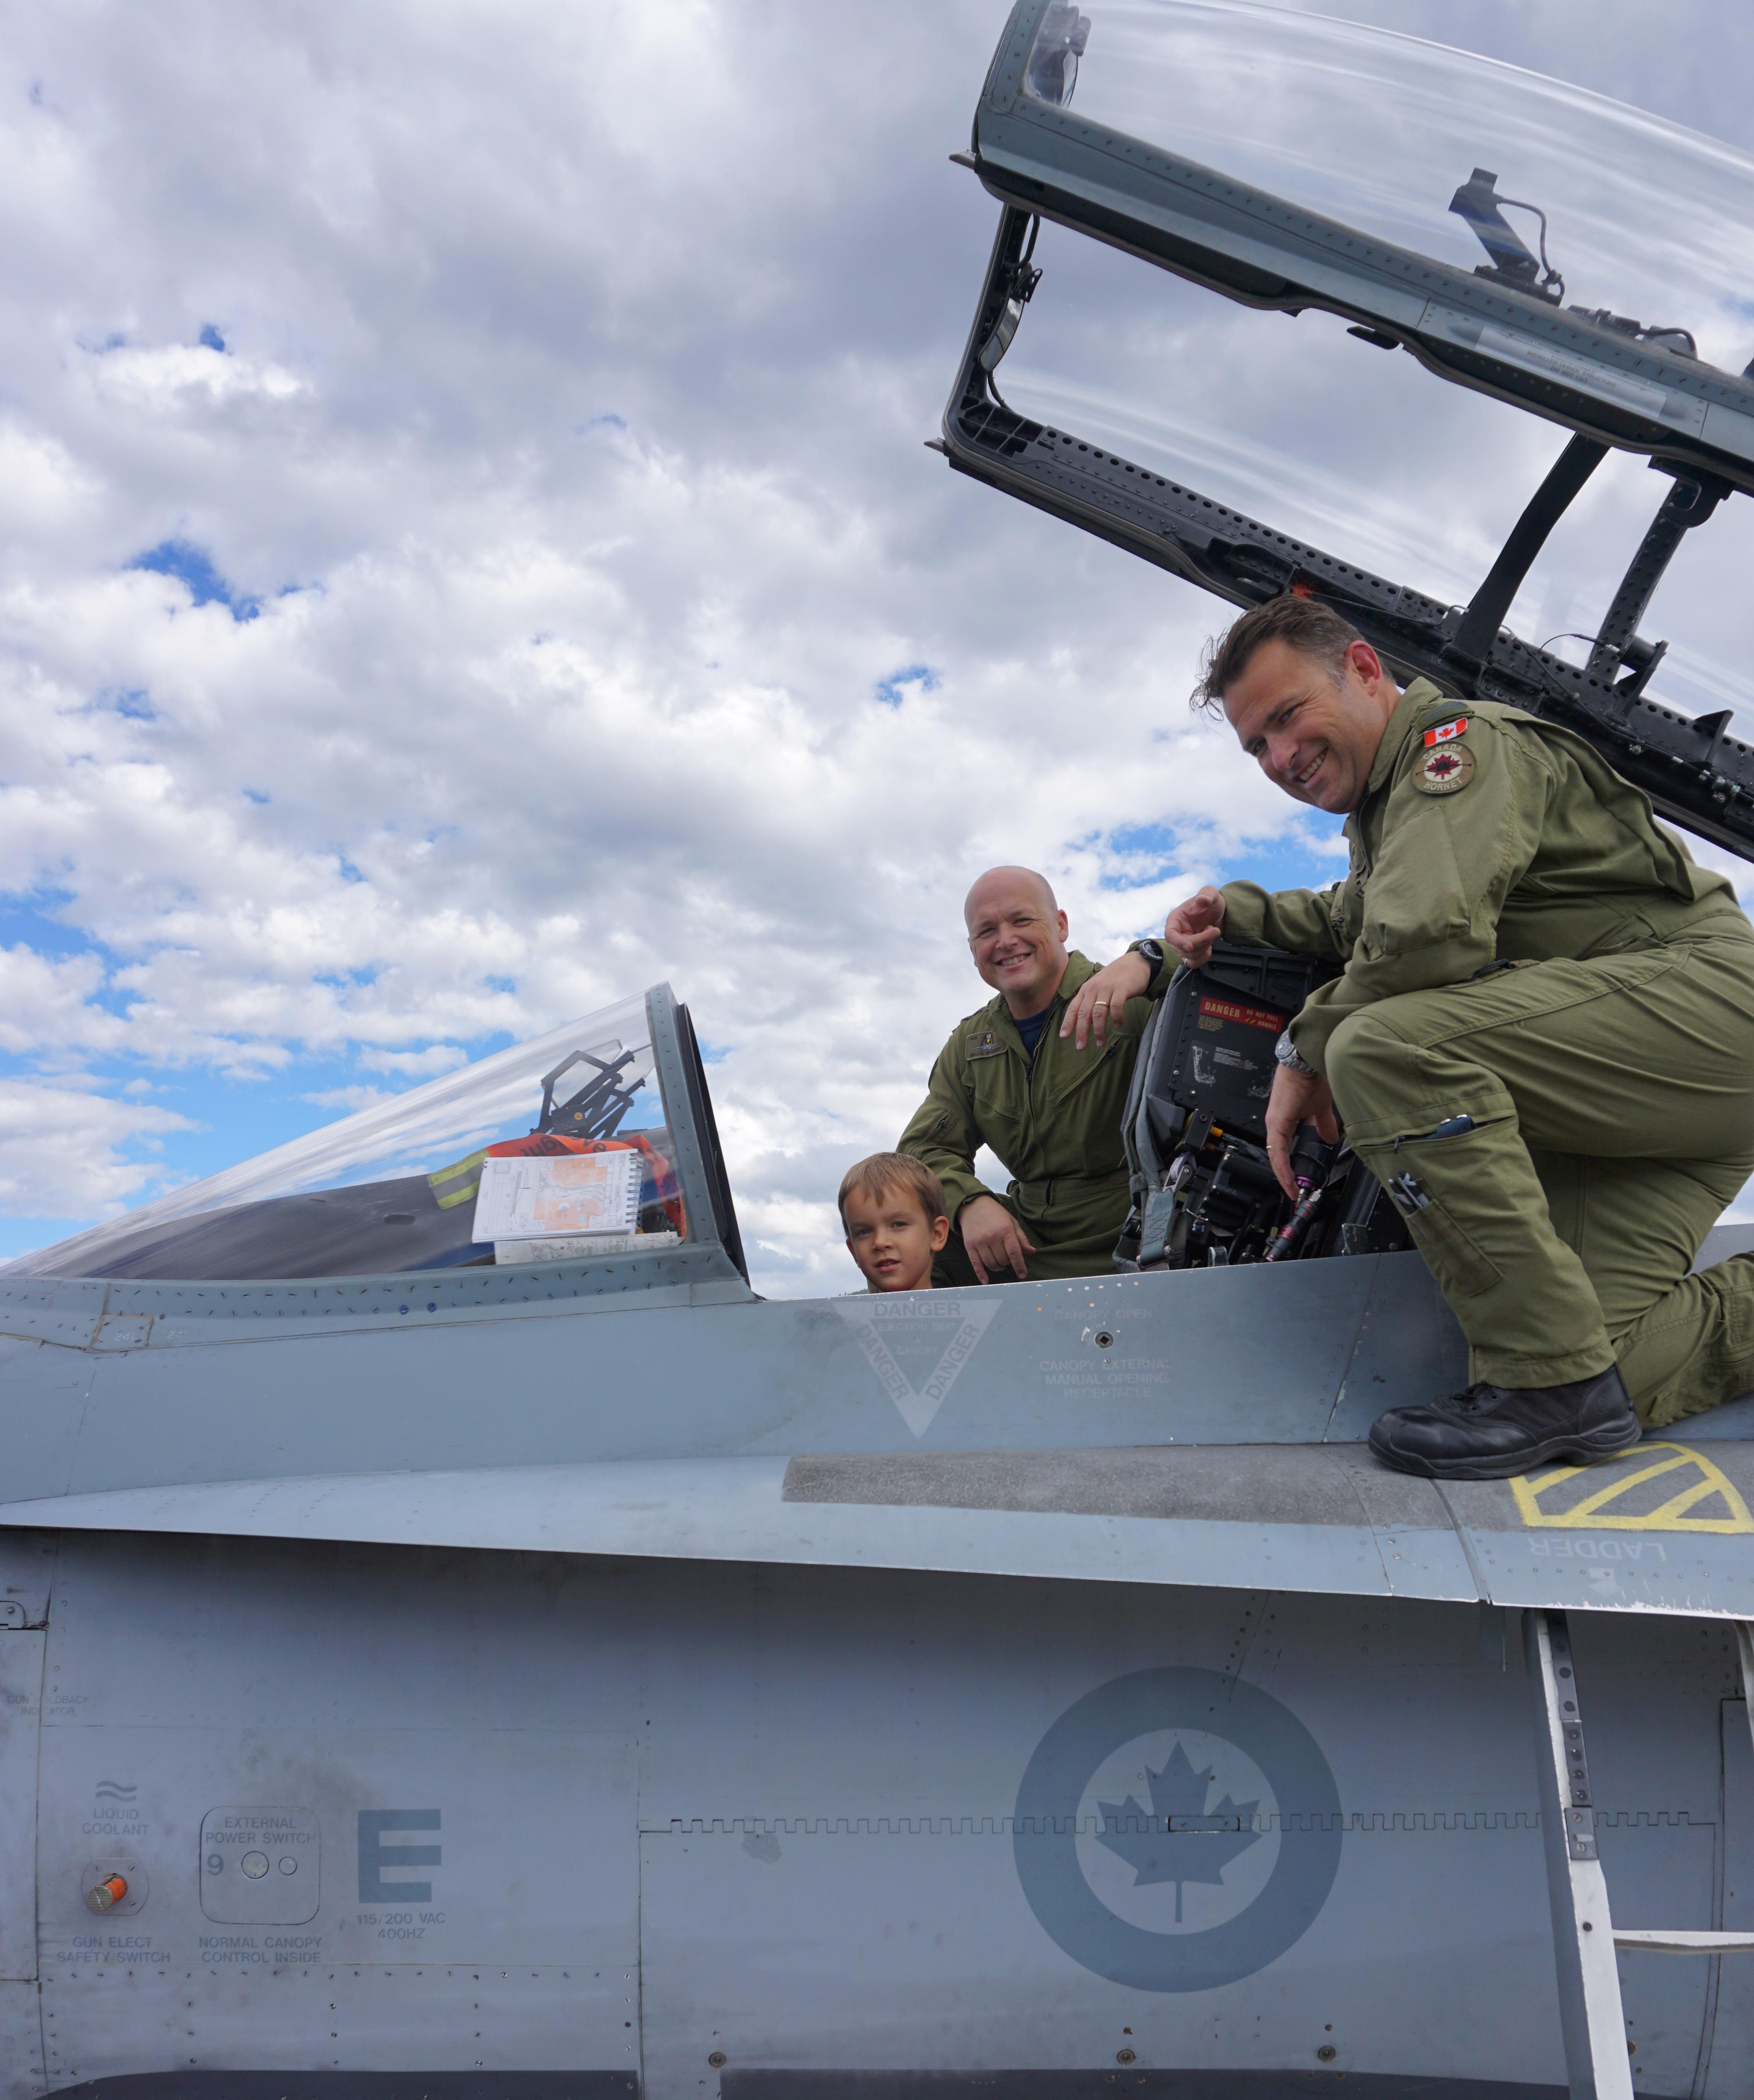 Squadron Leader (retired) John Hart's great-grandson Nathan sits in the cockpit of a CF-188 Hornet from 409 Tactical Fighter Squadron, located at 4 Wing Cold Lake, Alberta. With him are Major Denis Bandet and Lieutenant-Colonel William Radiff (right), both from 409 Squadron. The Hornets and their crews were in Penticton, British Columbia, to conduct a flyby over Squadron Leader Hart's home in honour of the veteran's 100th birthday and his service in the Battle of Britain. PHOTO: Submitted